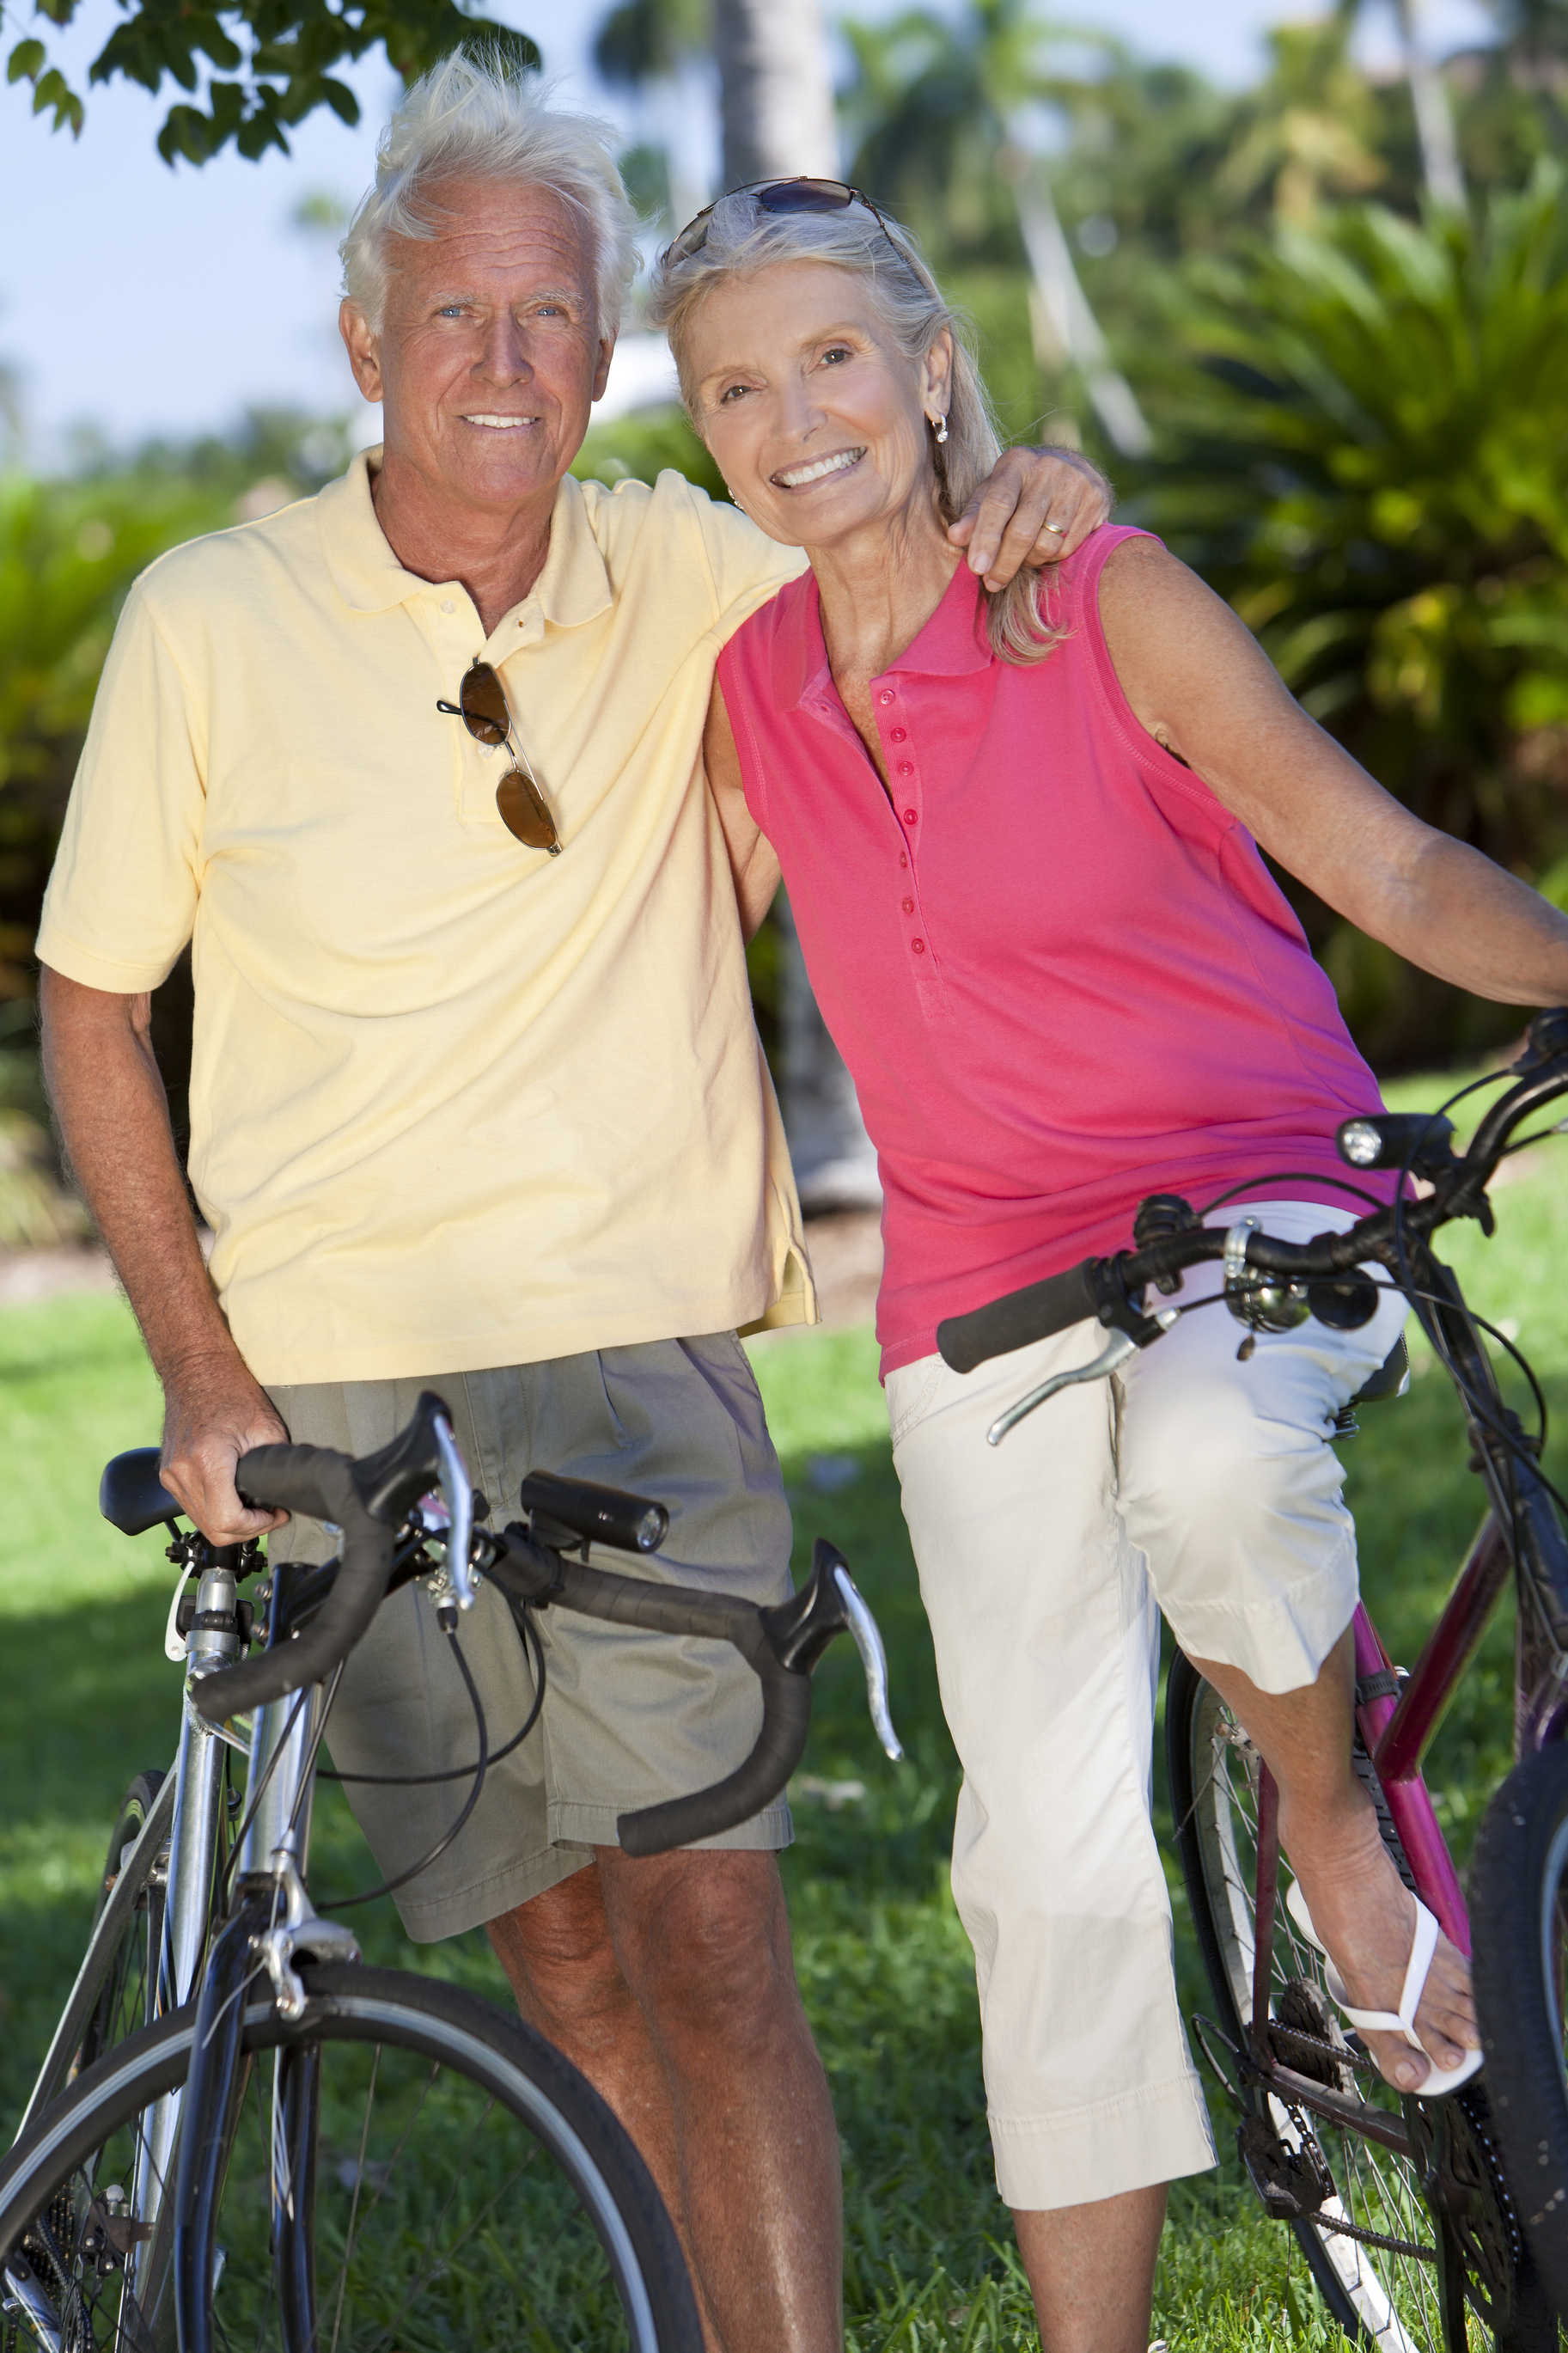 https://i2.wp.com/www.azactiveadult.com/wp-content/uploads/2011/10/active-adult-couple-bike-riding.jpg